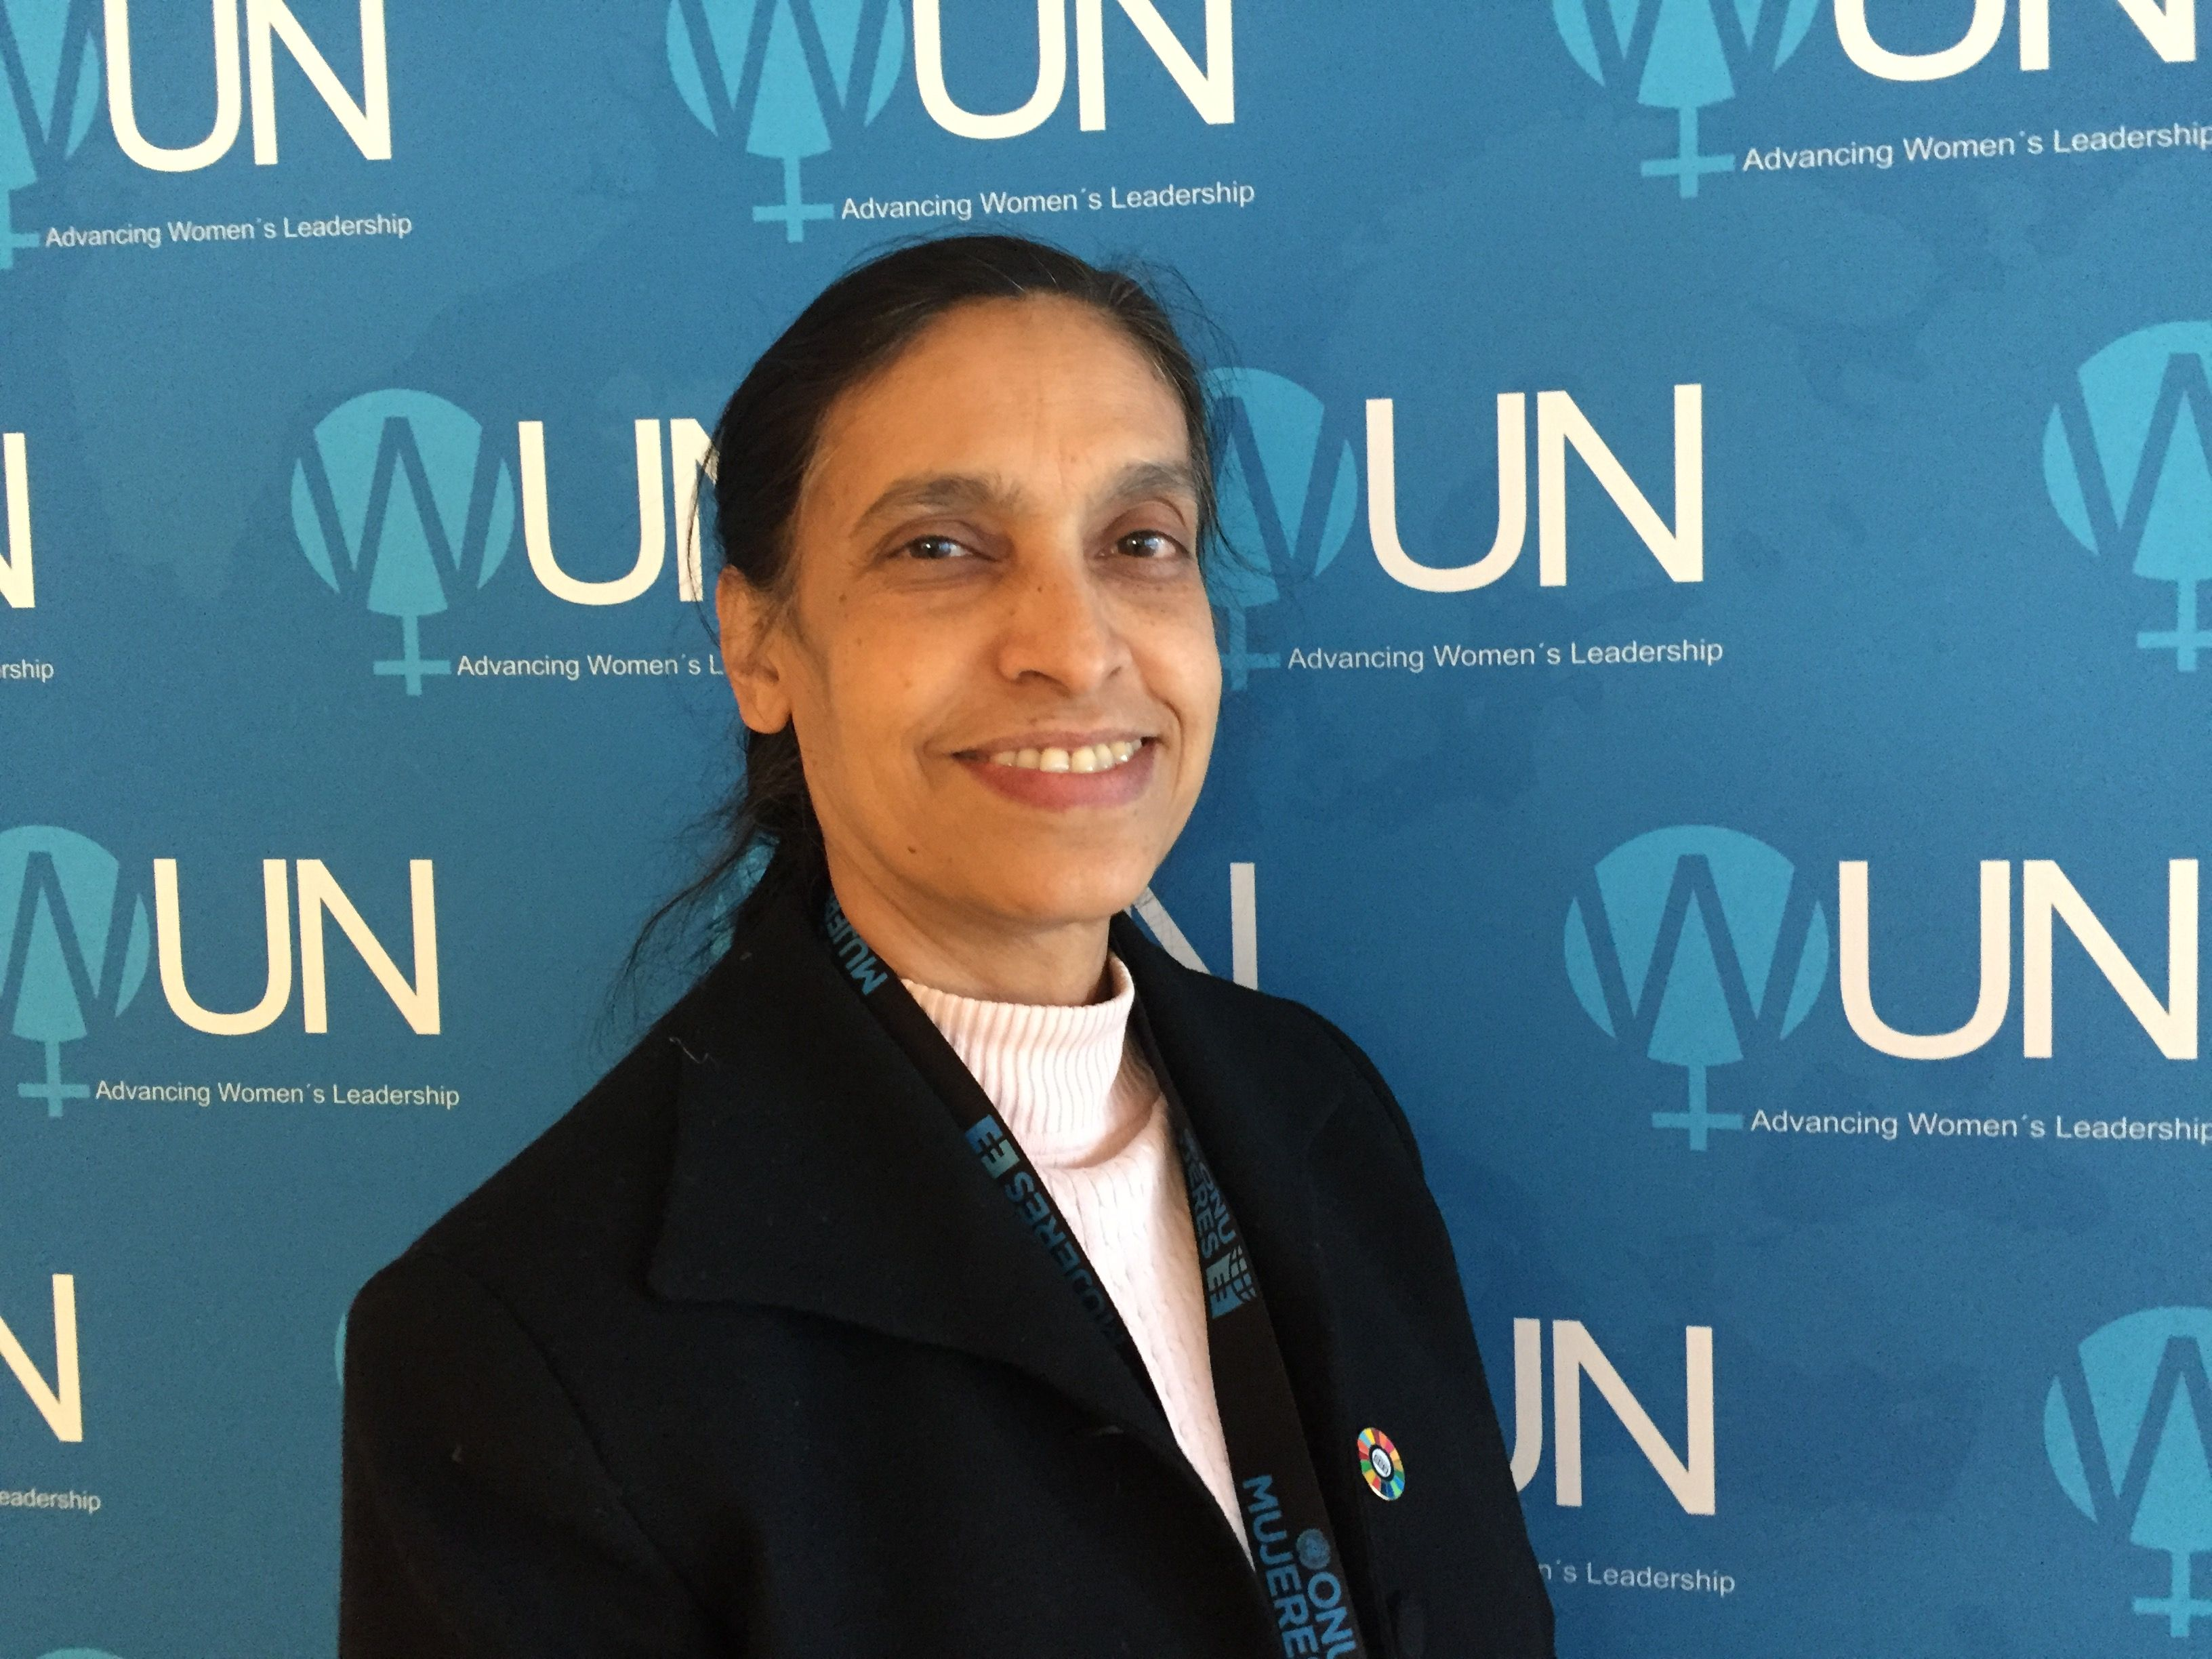 Sr. Celine Paramundayil finishes role at the UN